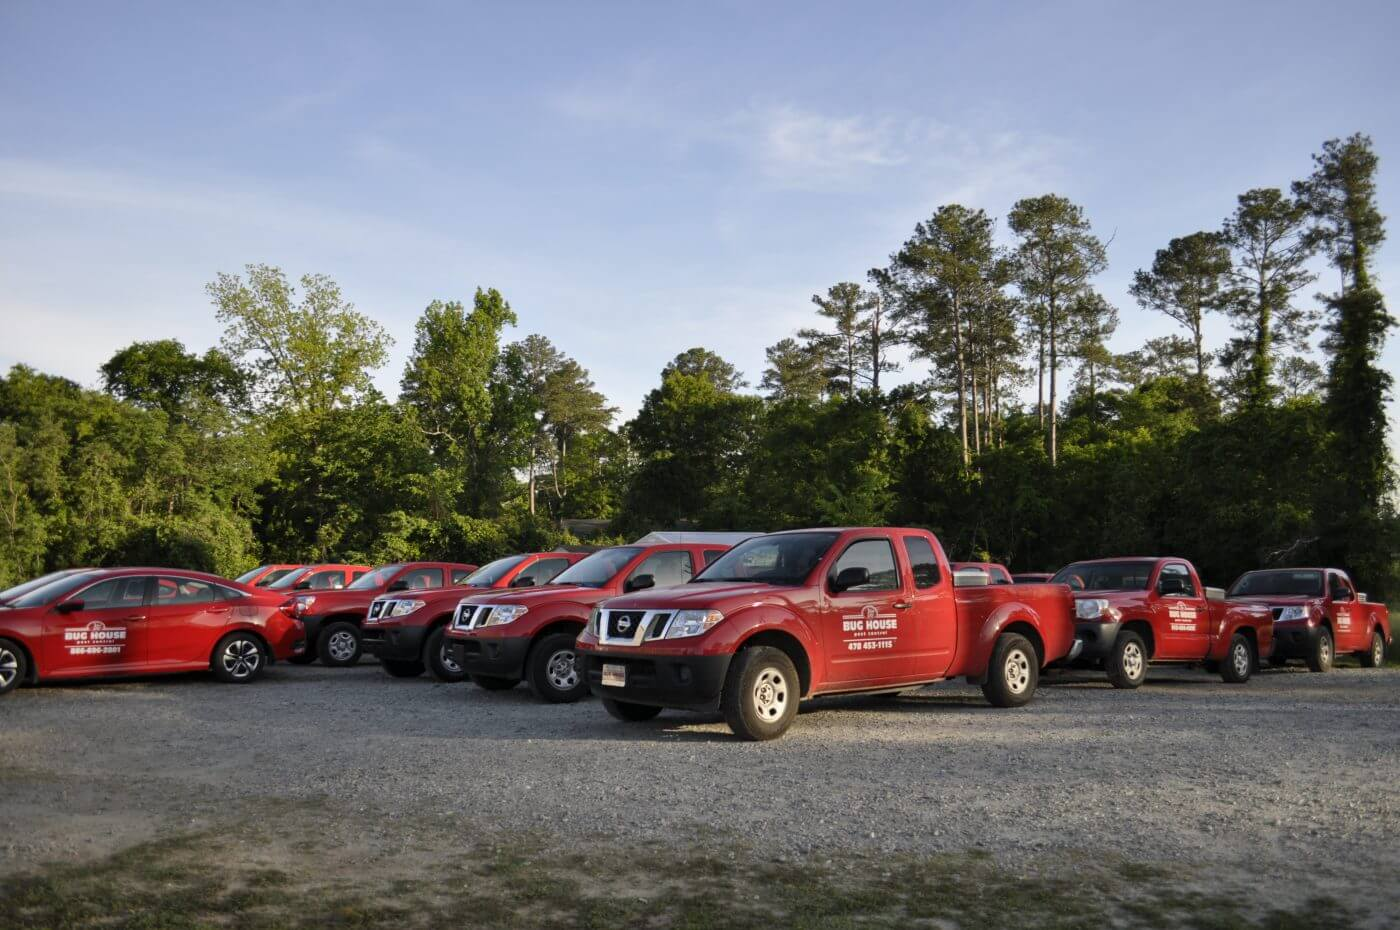 Bug House Milledgeville company vehicles lined up